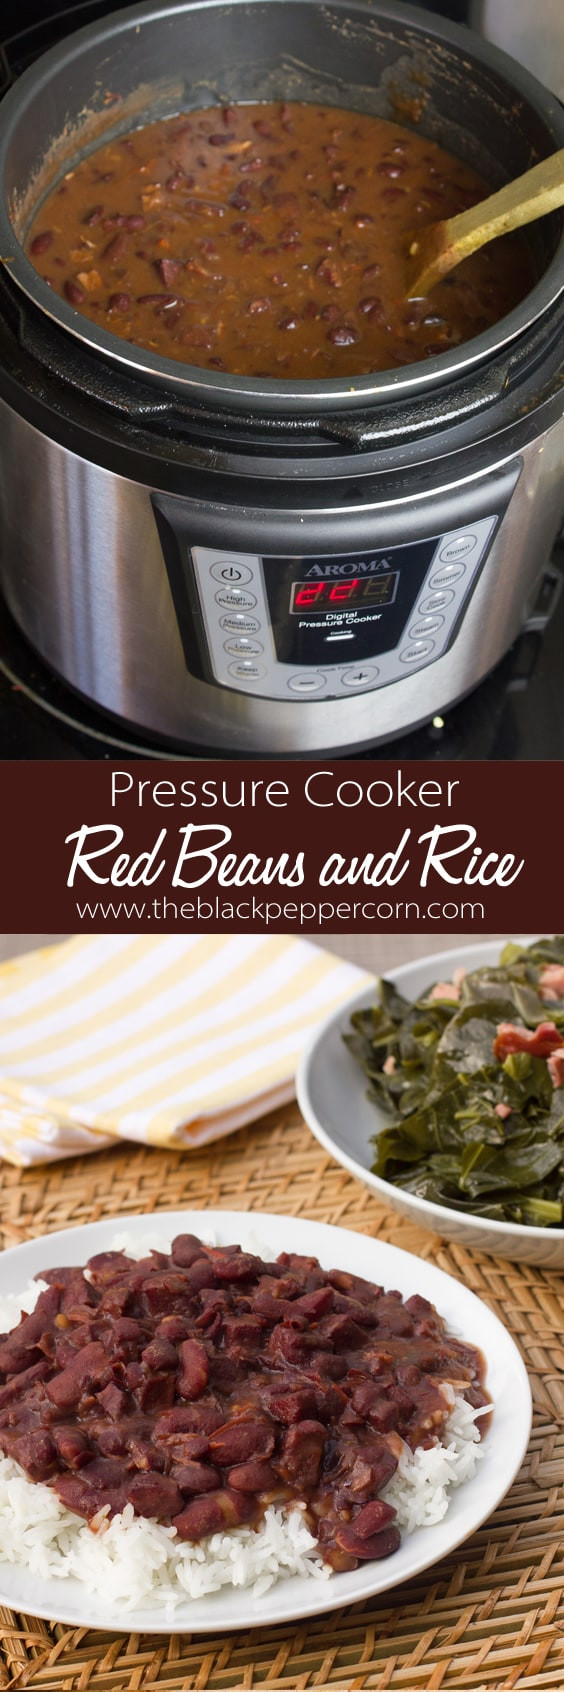 Pressure Cooker Red Beans And Rice  Red Beans and Rice Pressure Cooker Recipe Instant Pot